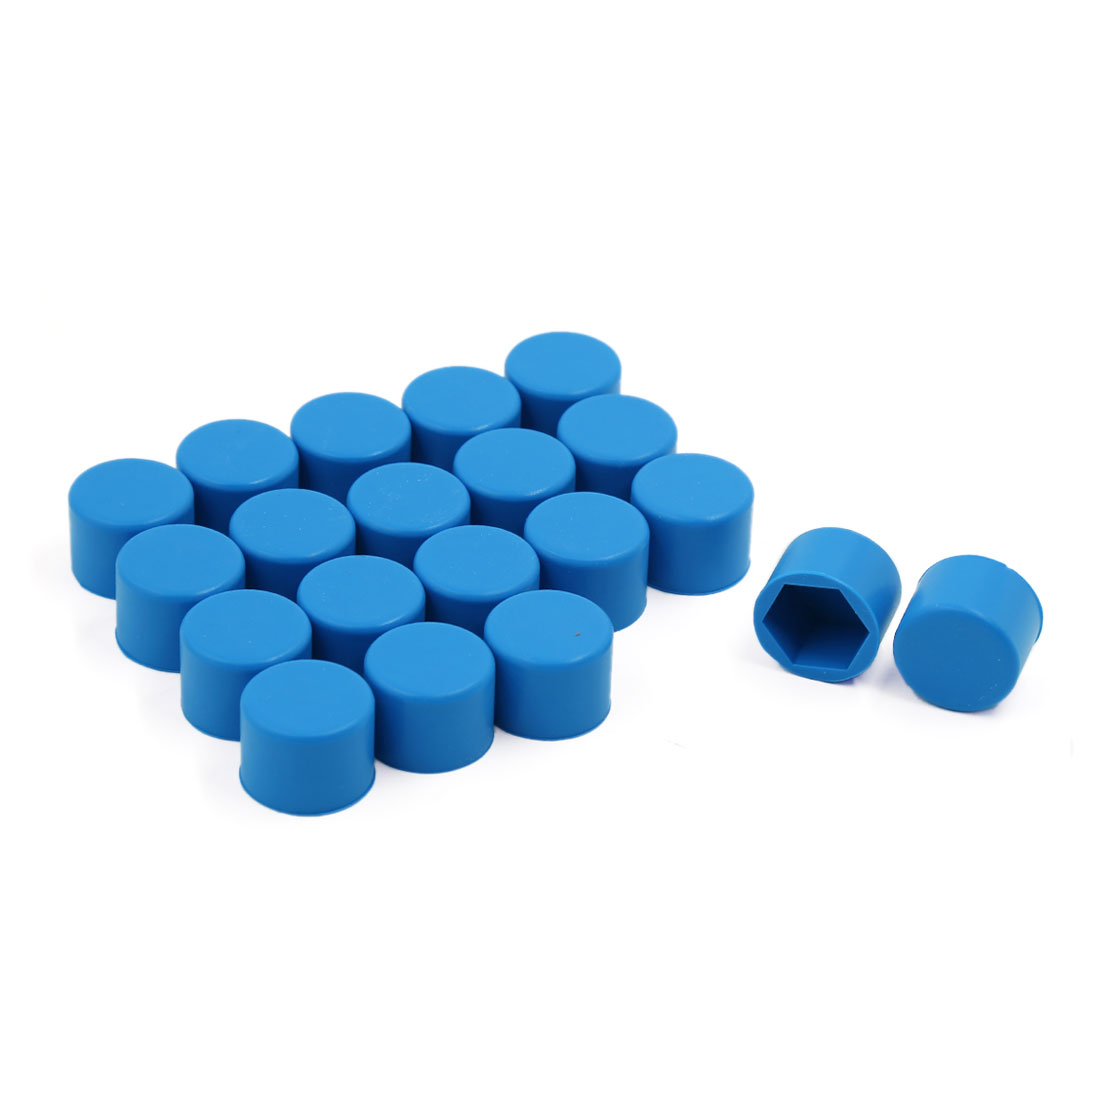 20pcs Universal 17mm Silicone Wheel Lugs Nuts Bolts Covers Protective Caps Blue